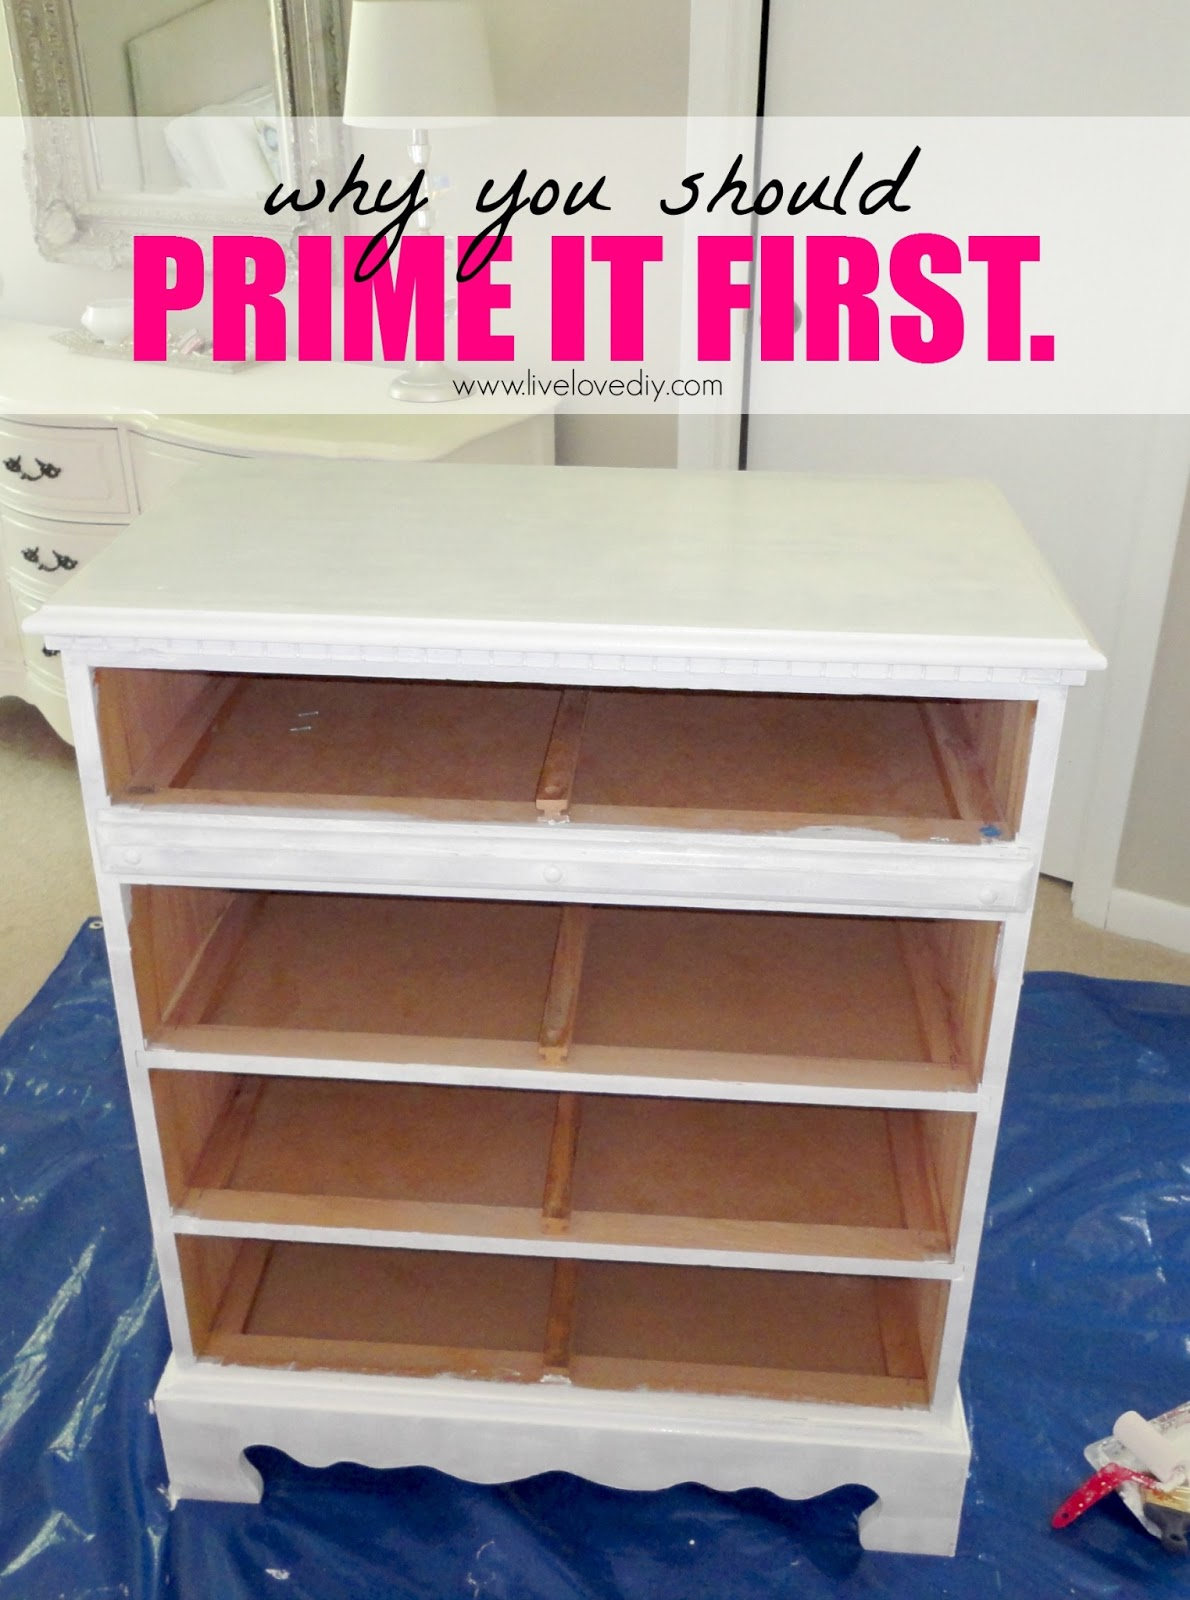 LiveLoveDIY: How To Paint Laminate Furniture in 3 Easy Steps!